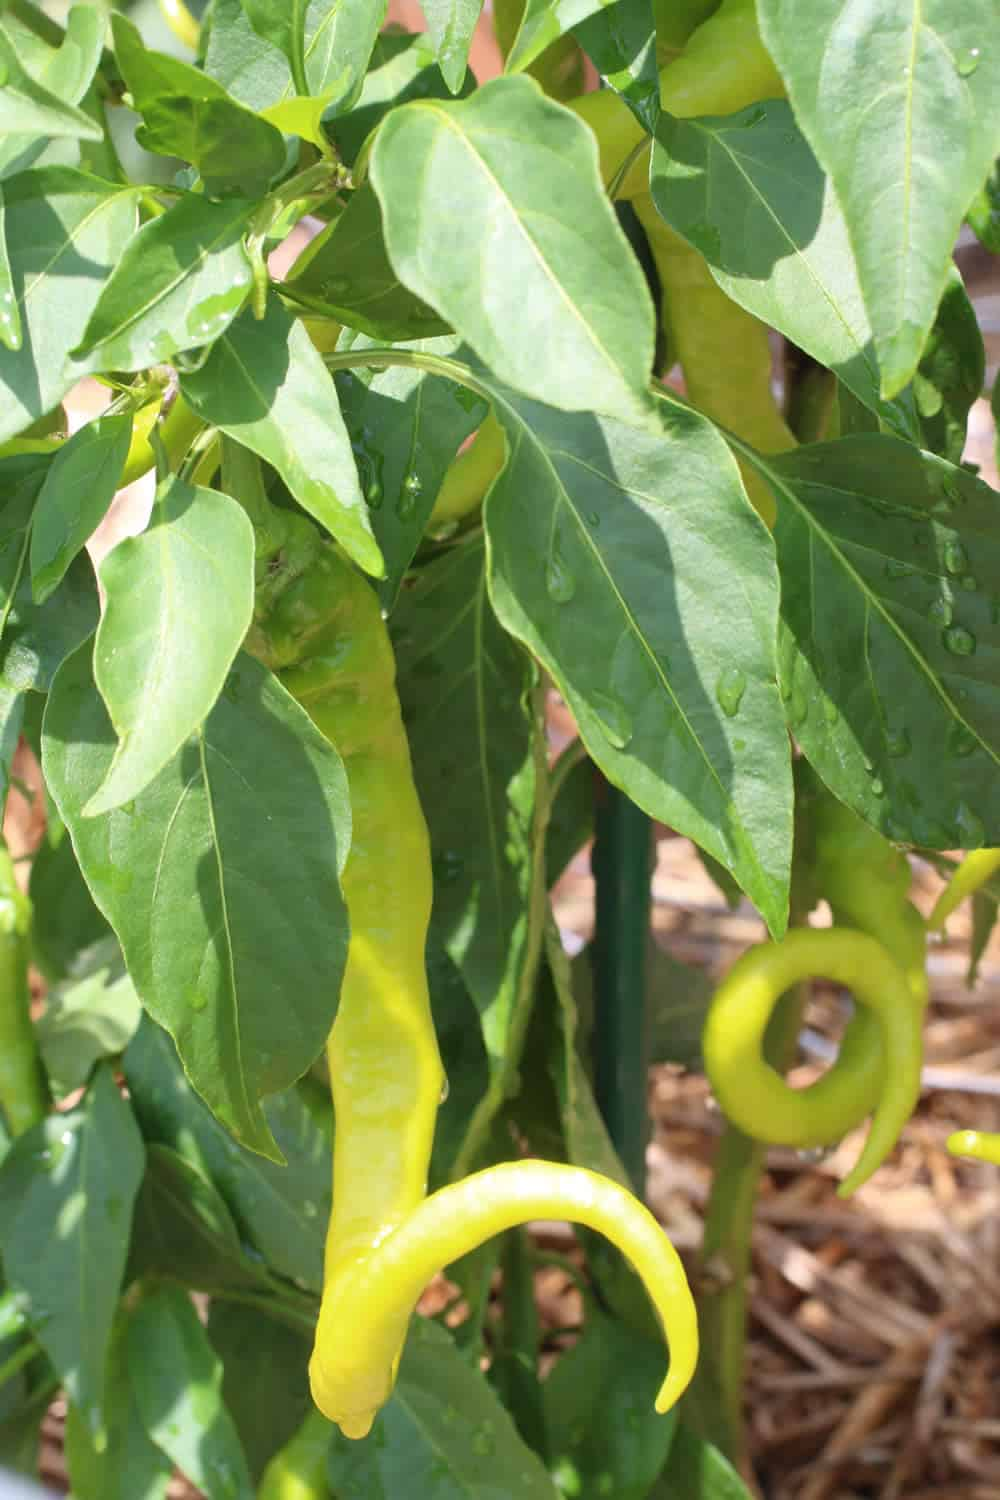 Growing Chili Peppers - Chili Peppers Love Water